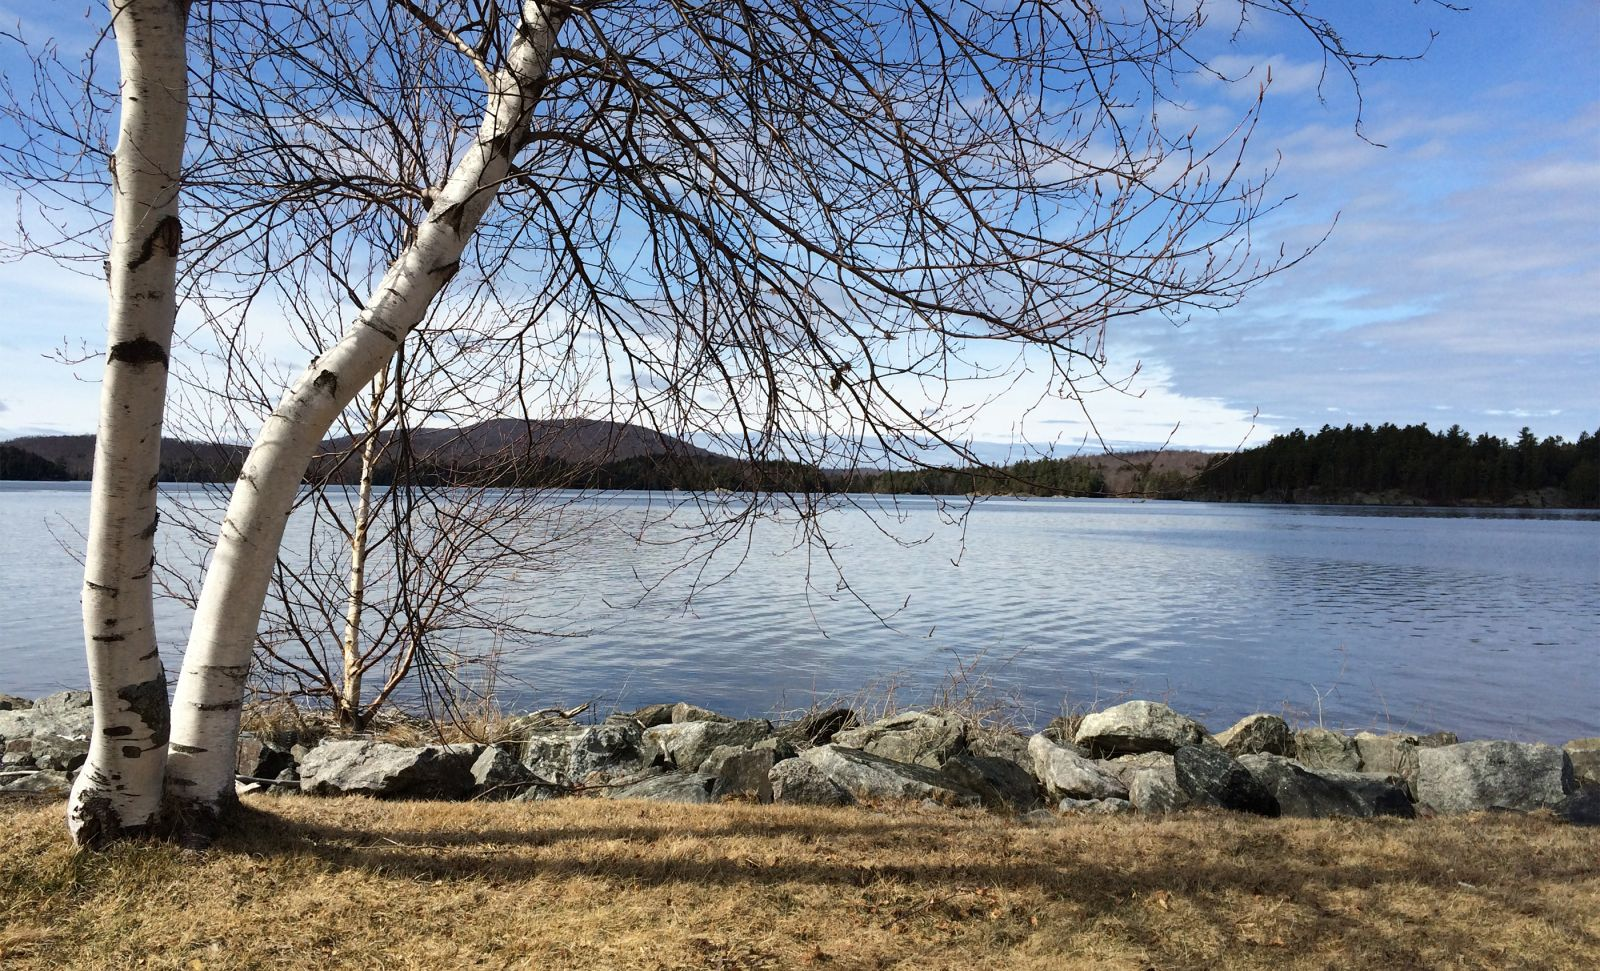 View of Big Tupper Lake from the Tupper Lake Boat Launch on Route 30. Photo taken March 15, 2016. Yes, I said March 15th!